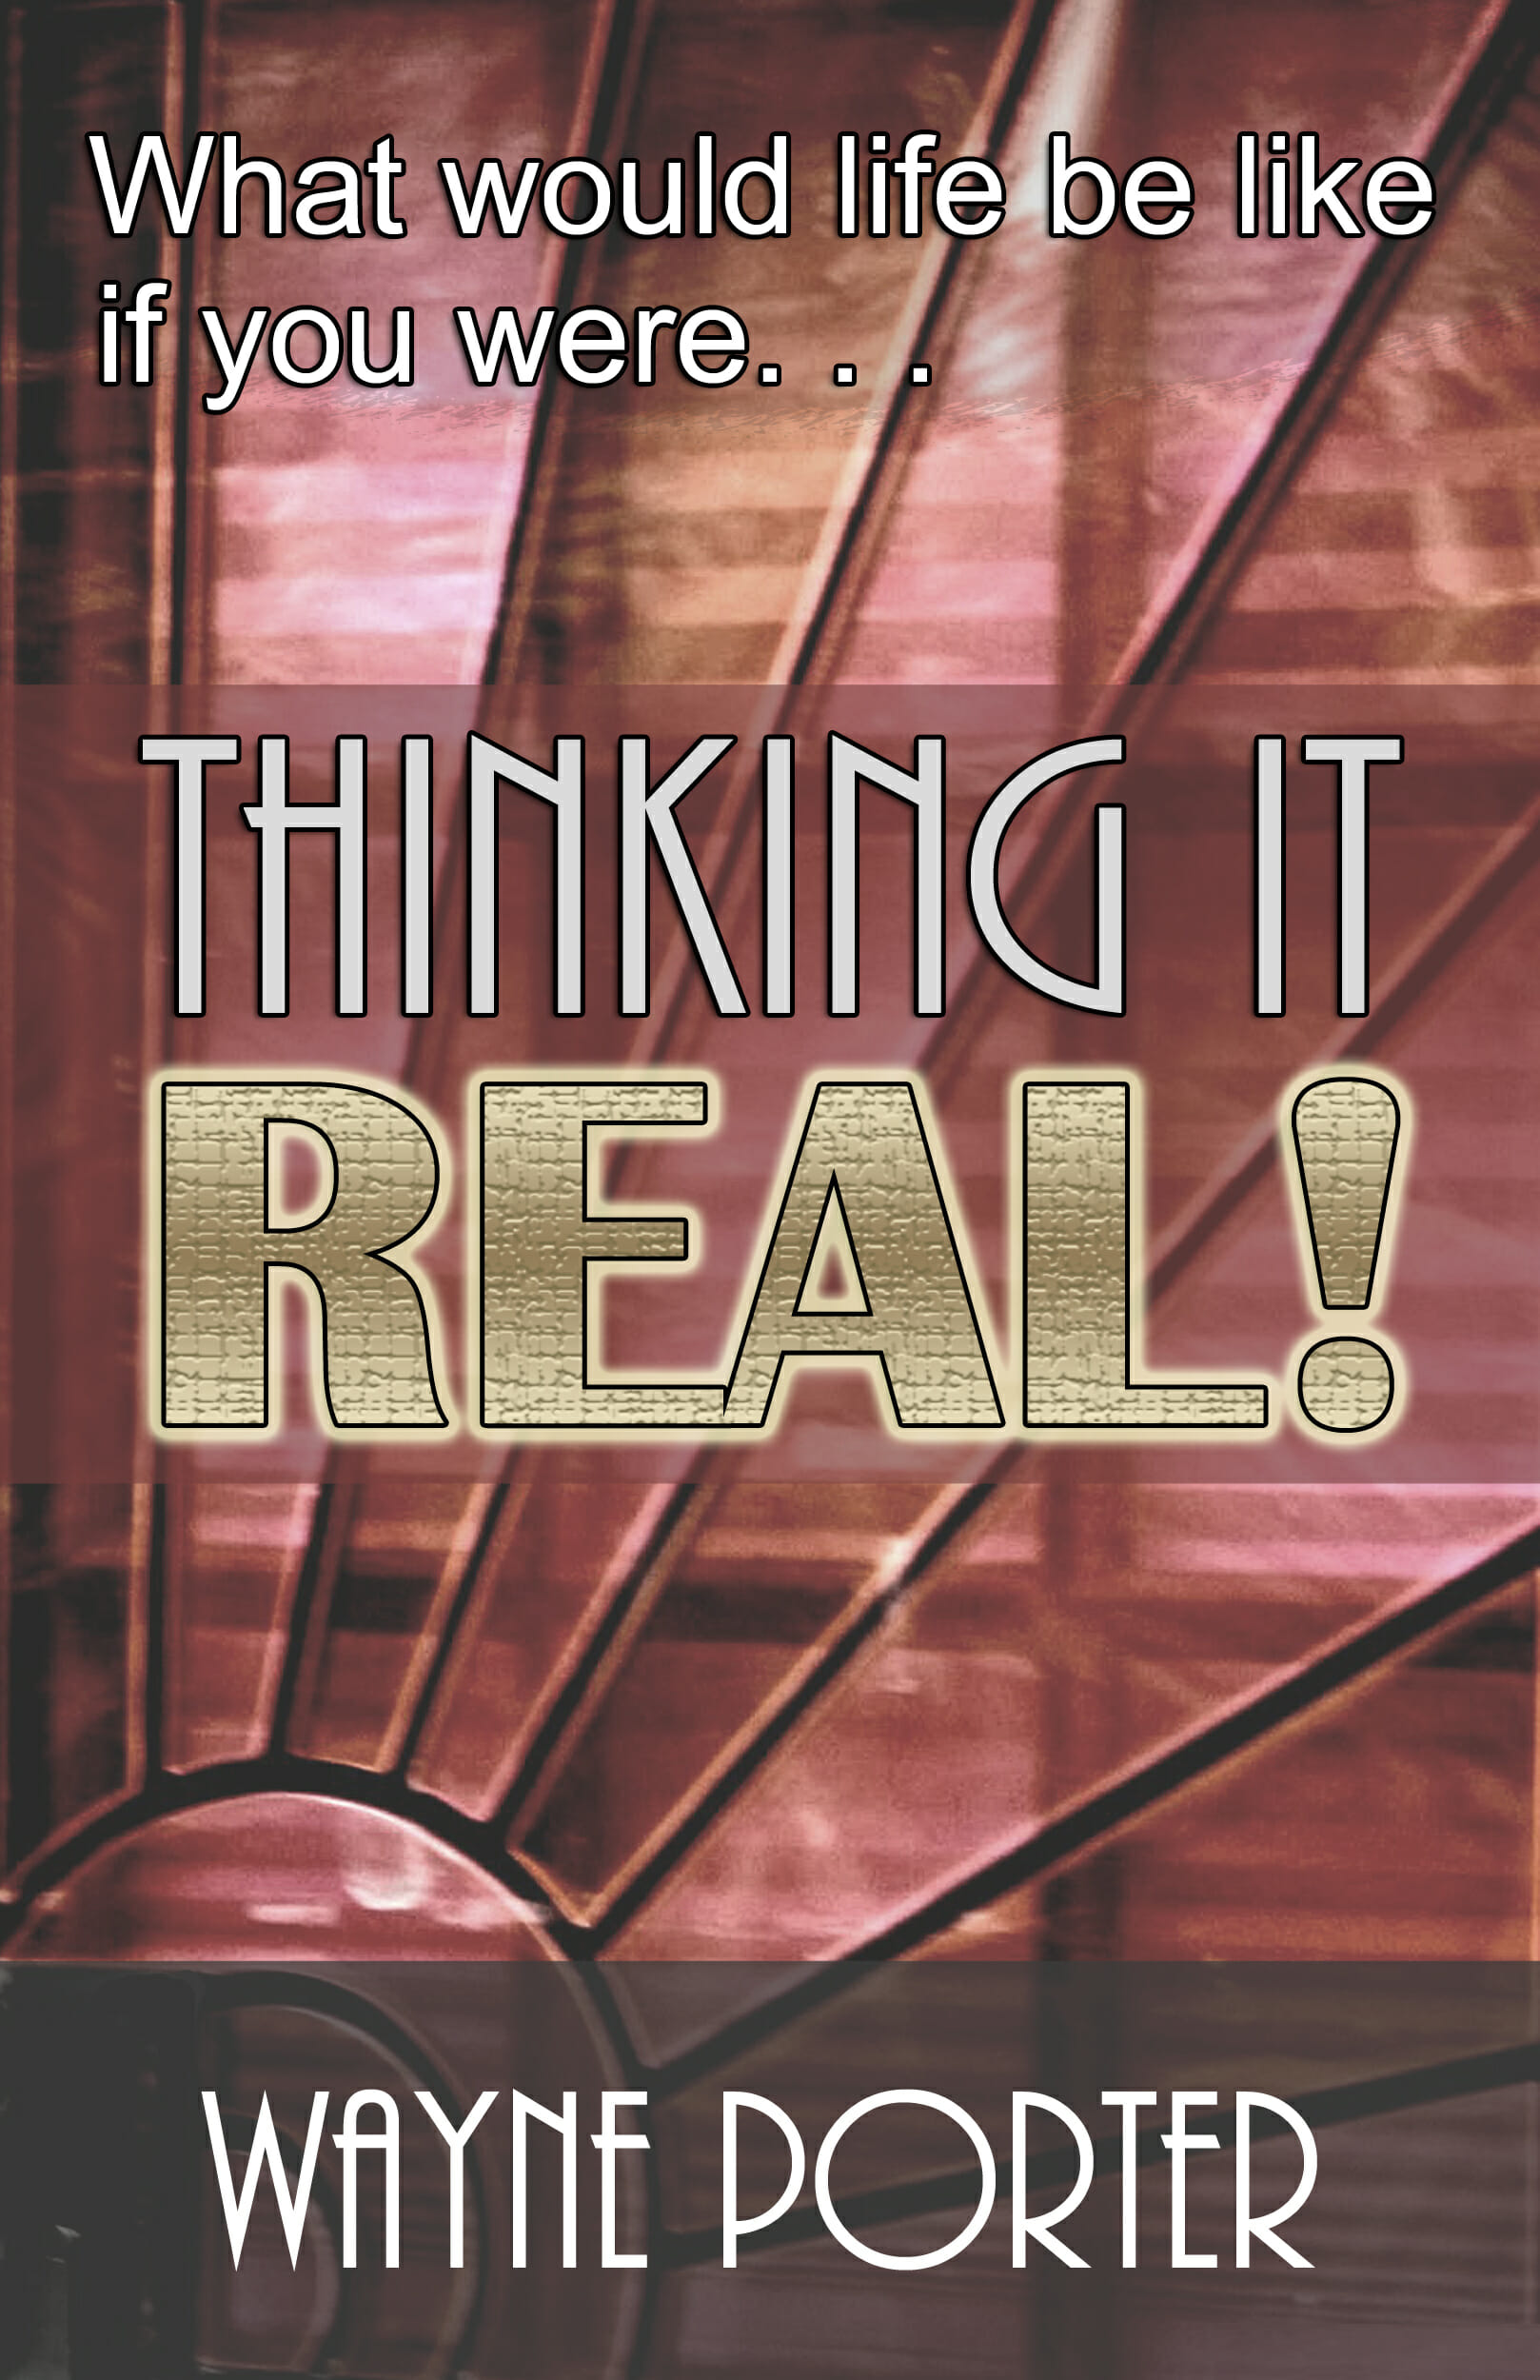 Thinking It Real! Image